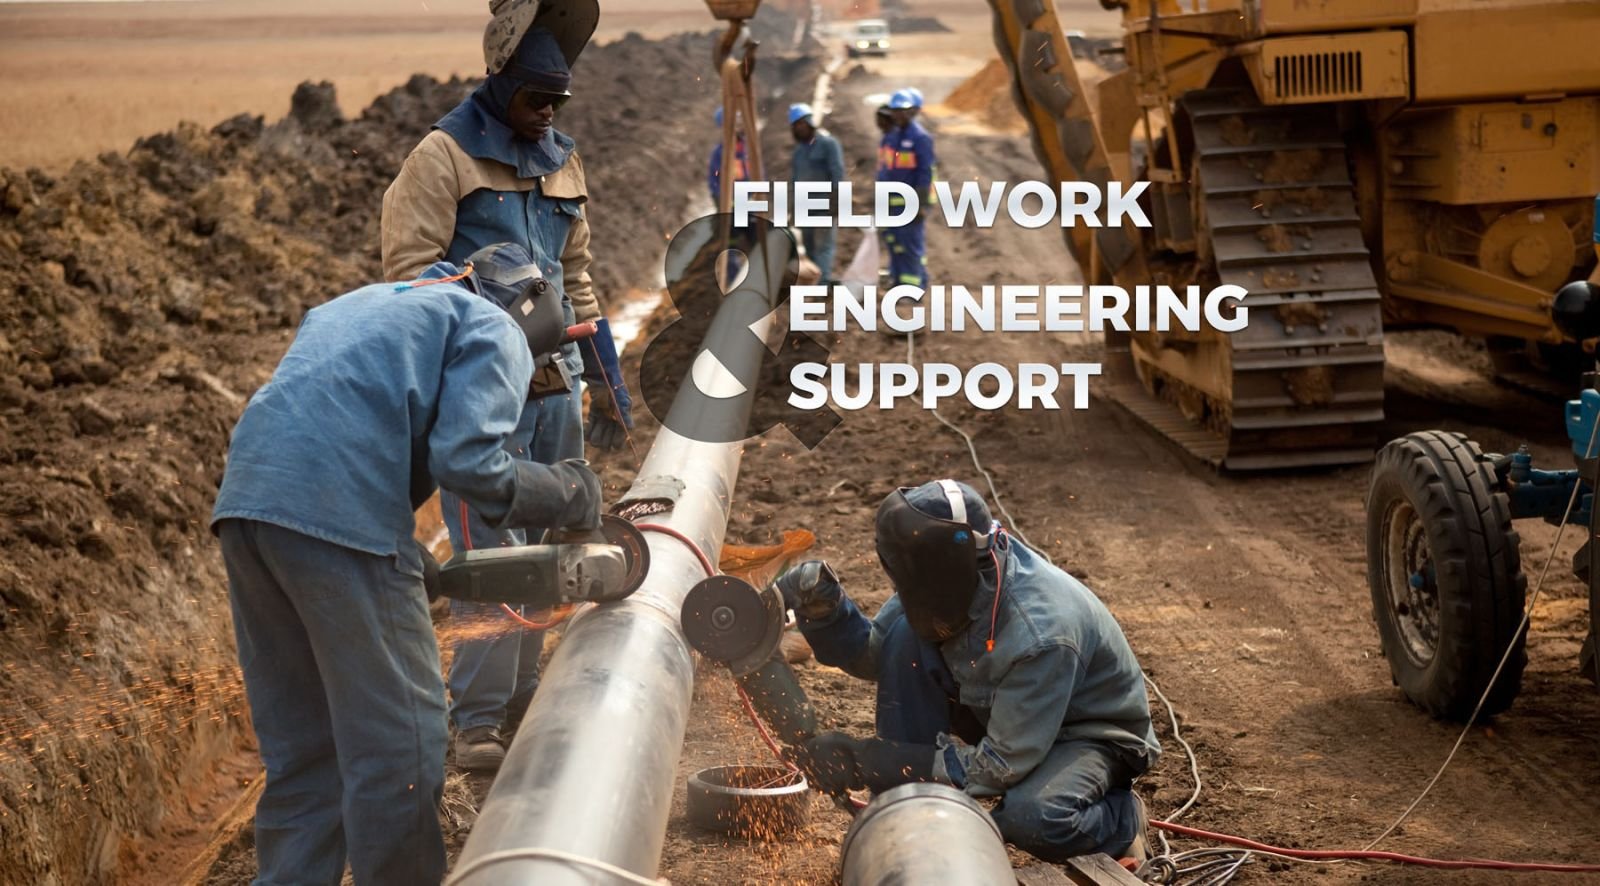 Field Work Engineering Support